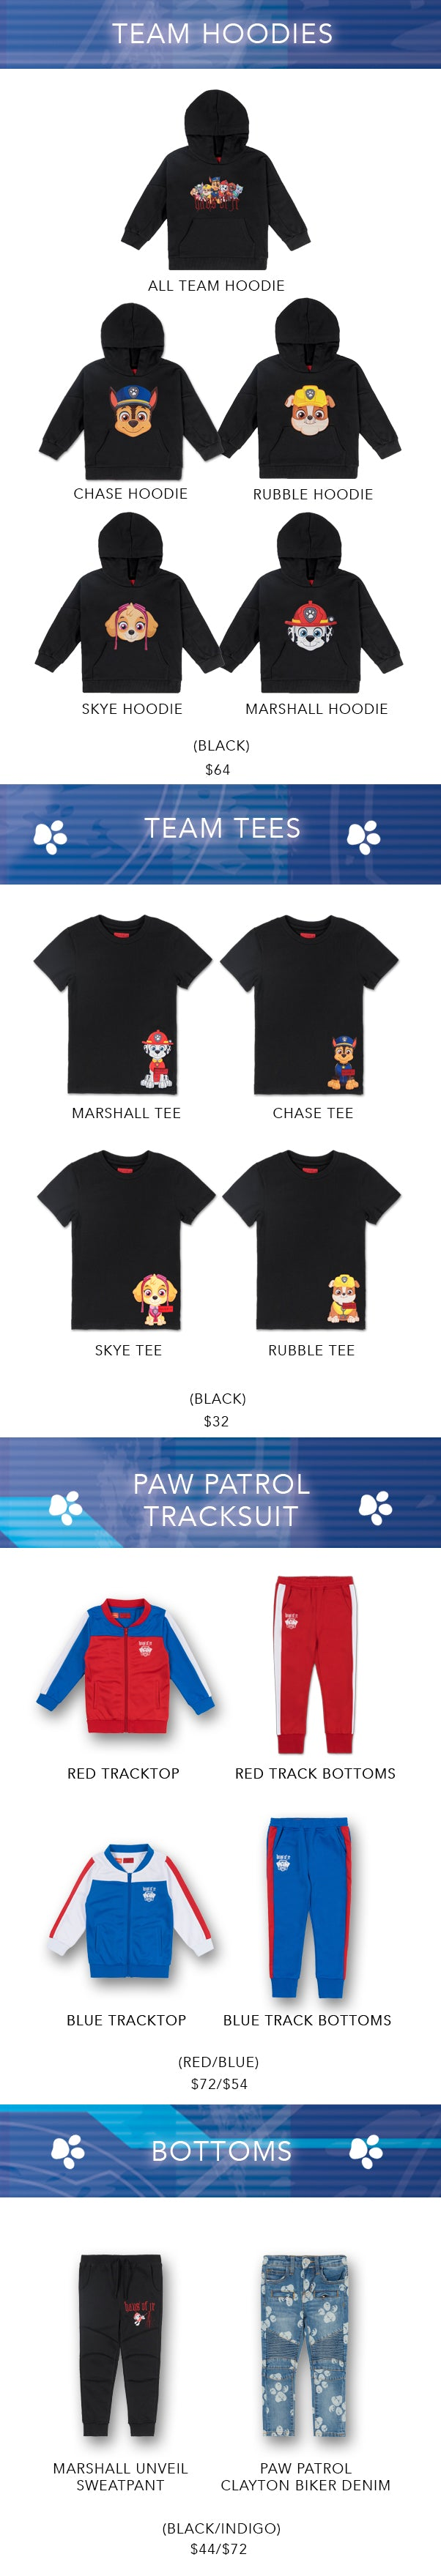 Haus Of JR X Paw Patrol (Lineup)